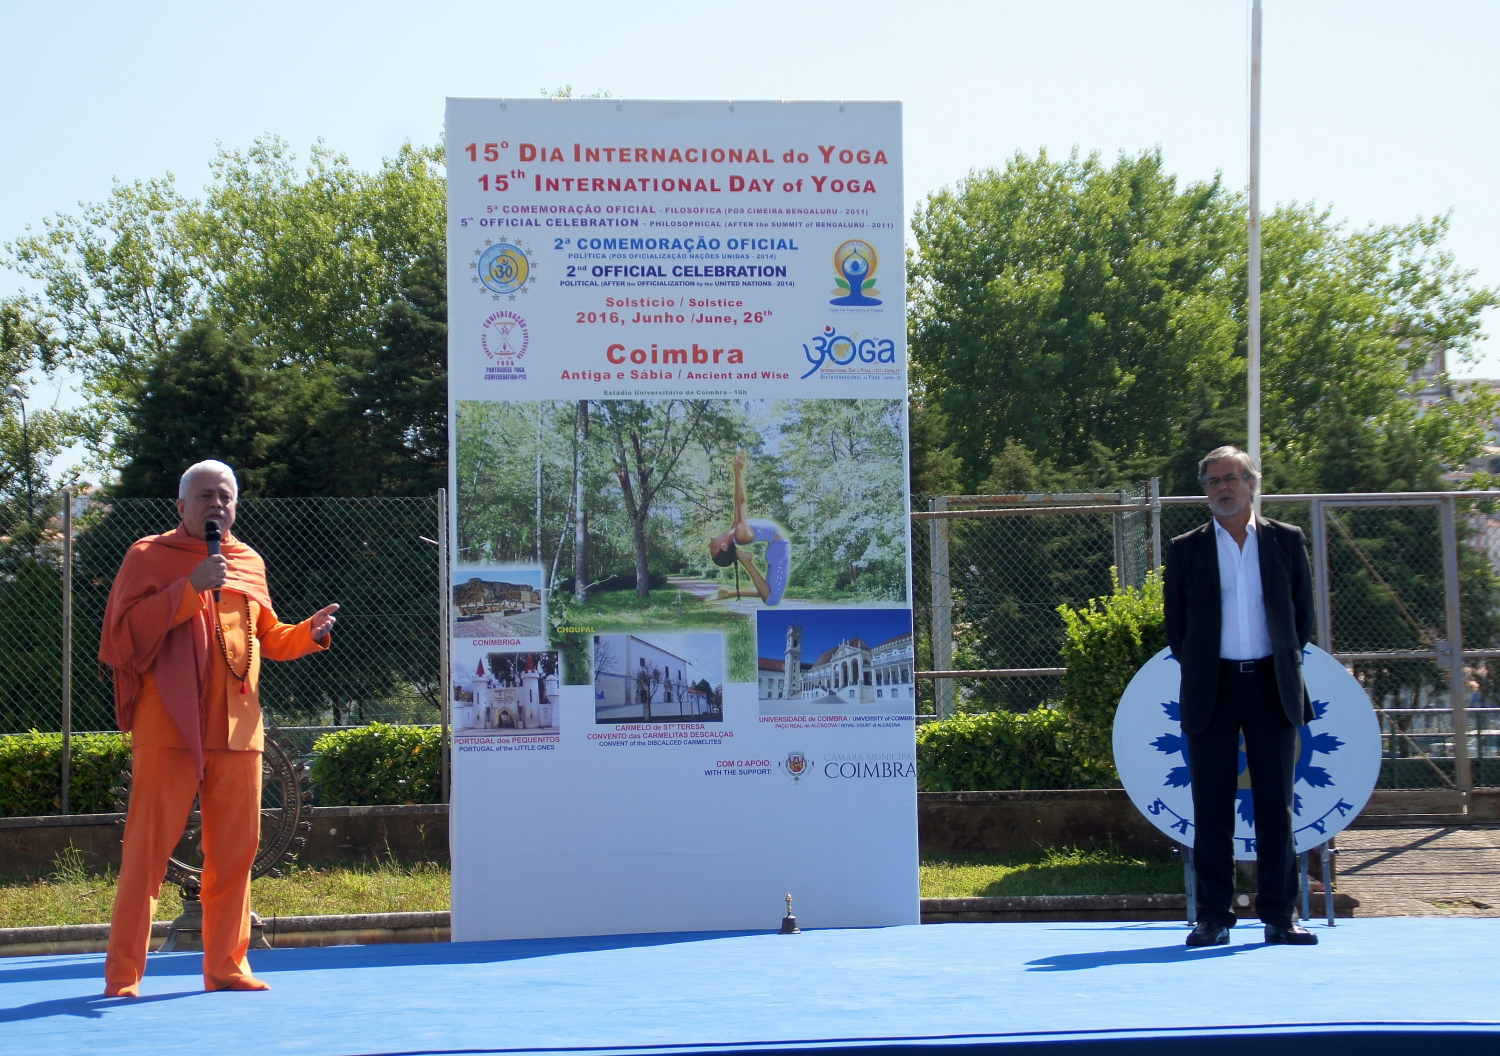 Speech by H.H. Jagat Guru Amrta Súryánanda Mahá Rája / International Yoga Grand Master Jorge Veiga e Castro and by the Councillor for Sports of the City of Coimbra, Carlos Cidade